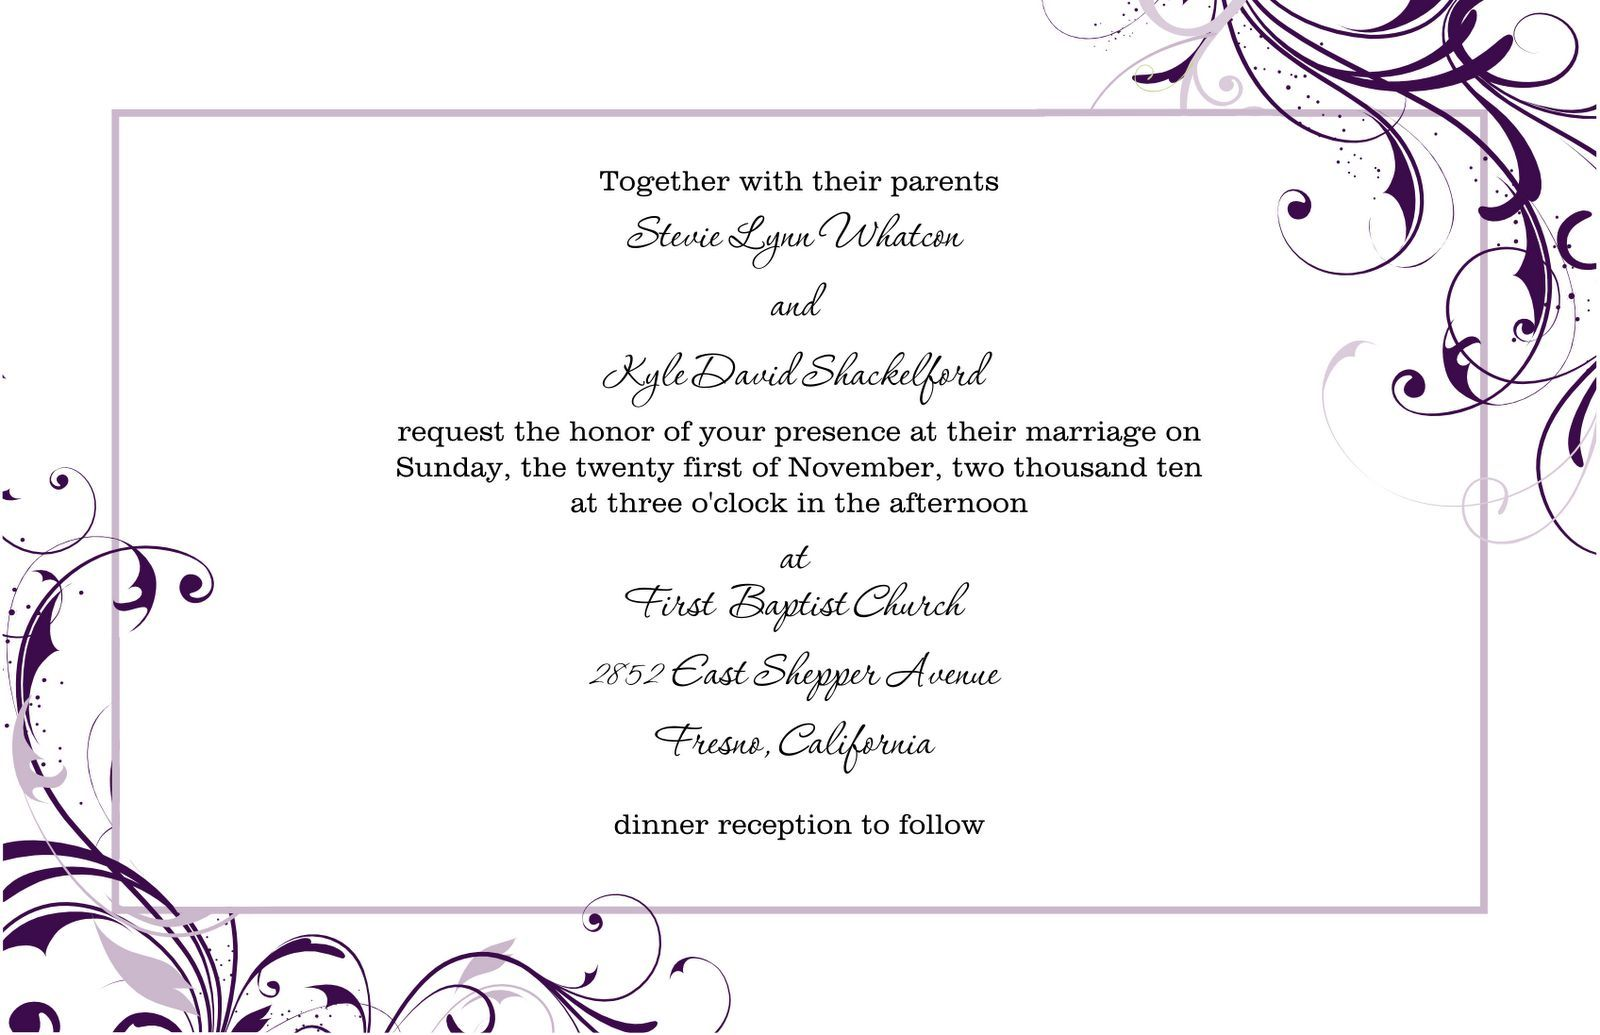 invitiation template - free blank wedding invitation templates for microsoft word